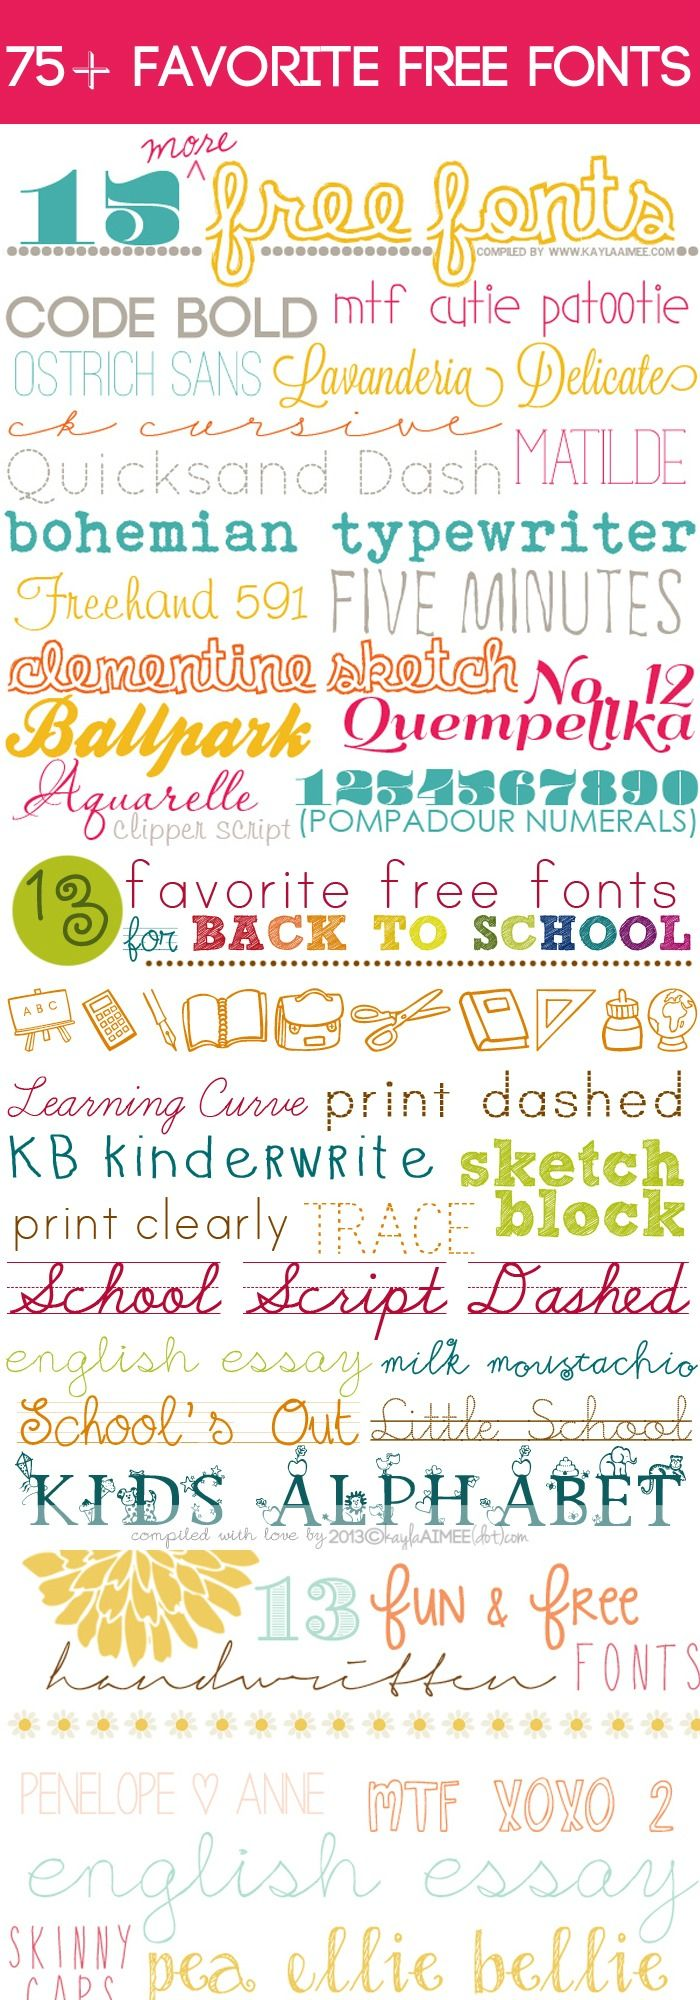 a collection of 75+ Favorite Free Fonts via @Kayla Aimee